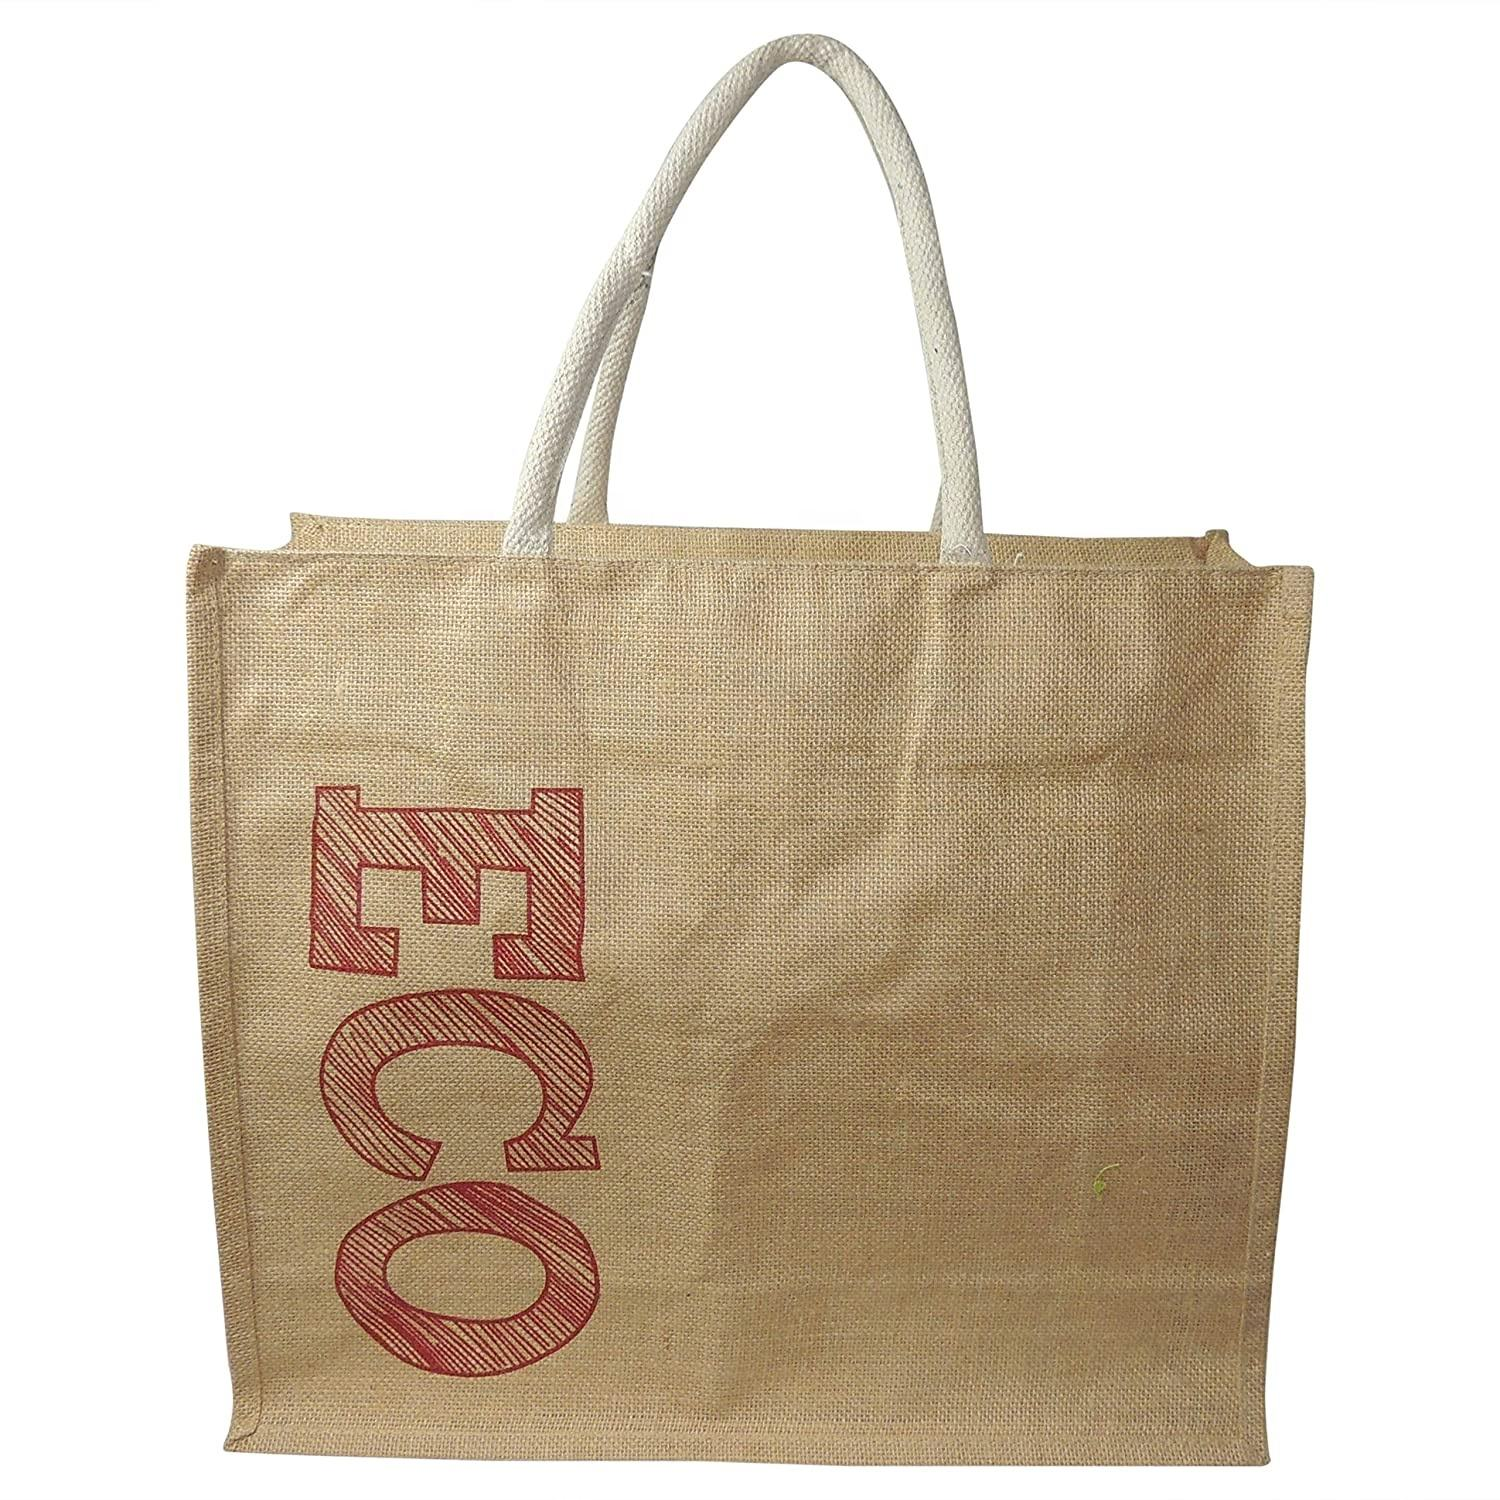 Natural Burlap Plain Jute Shopping Tote Bags